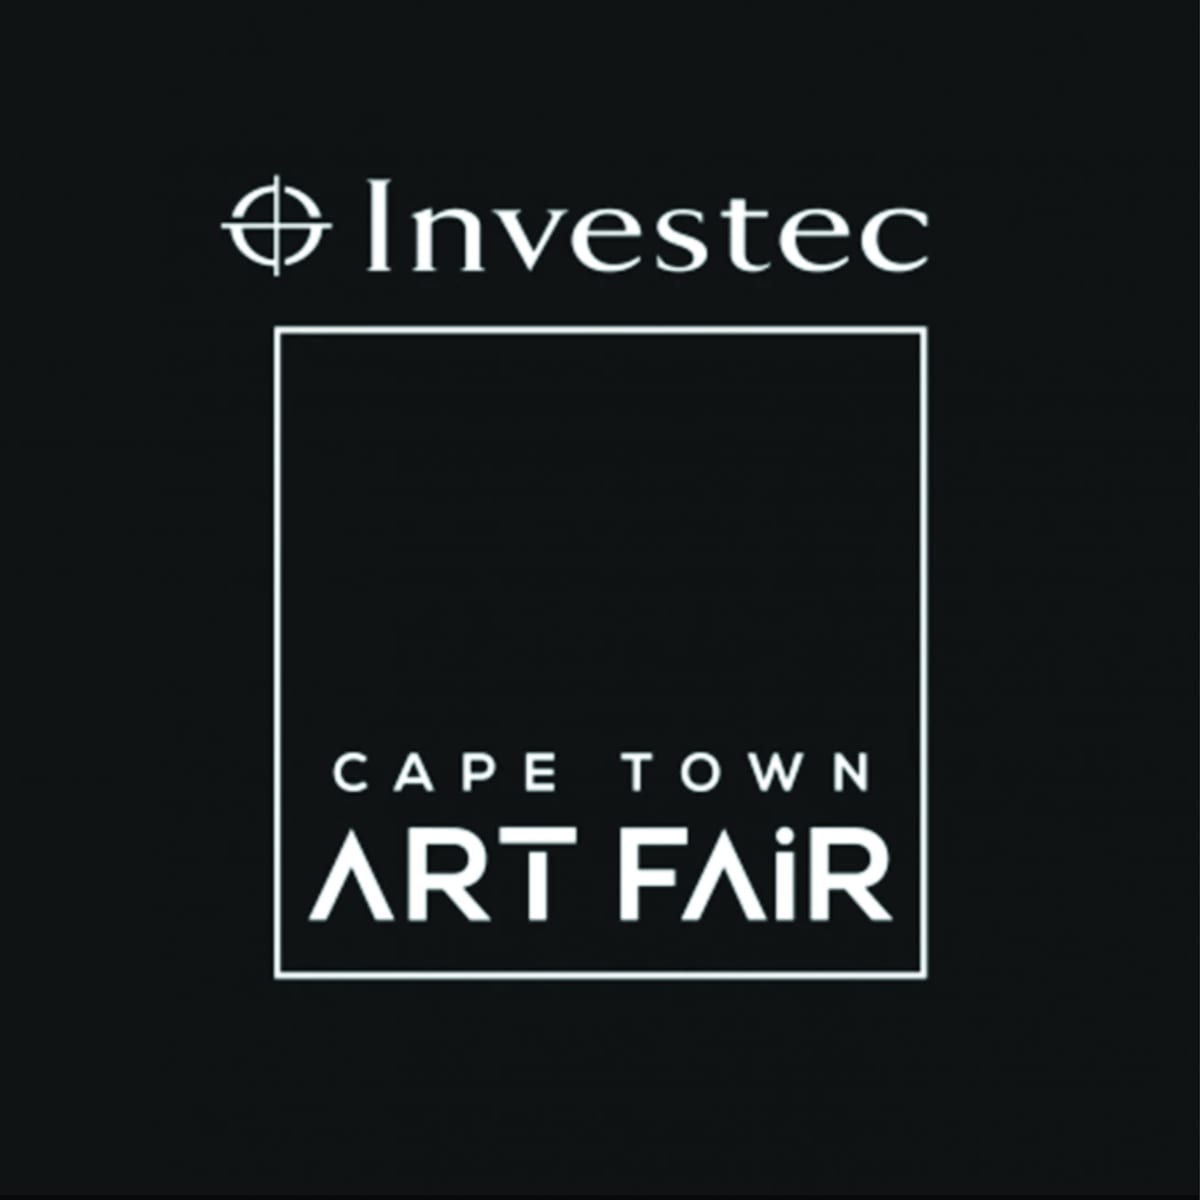 Investec Cape Town Art Fair 2020